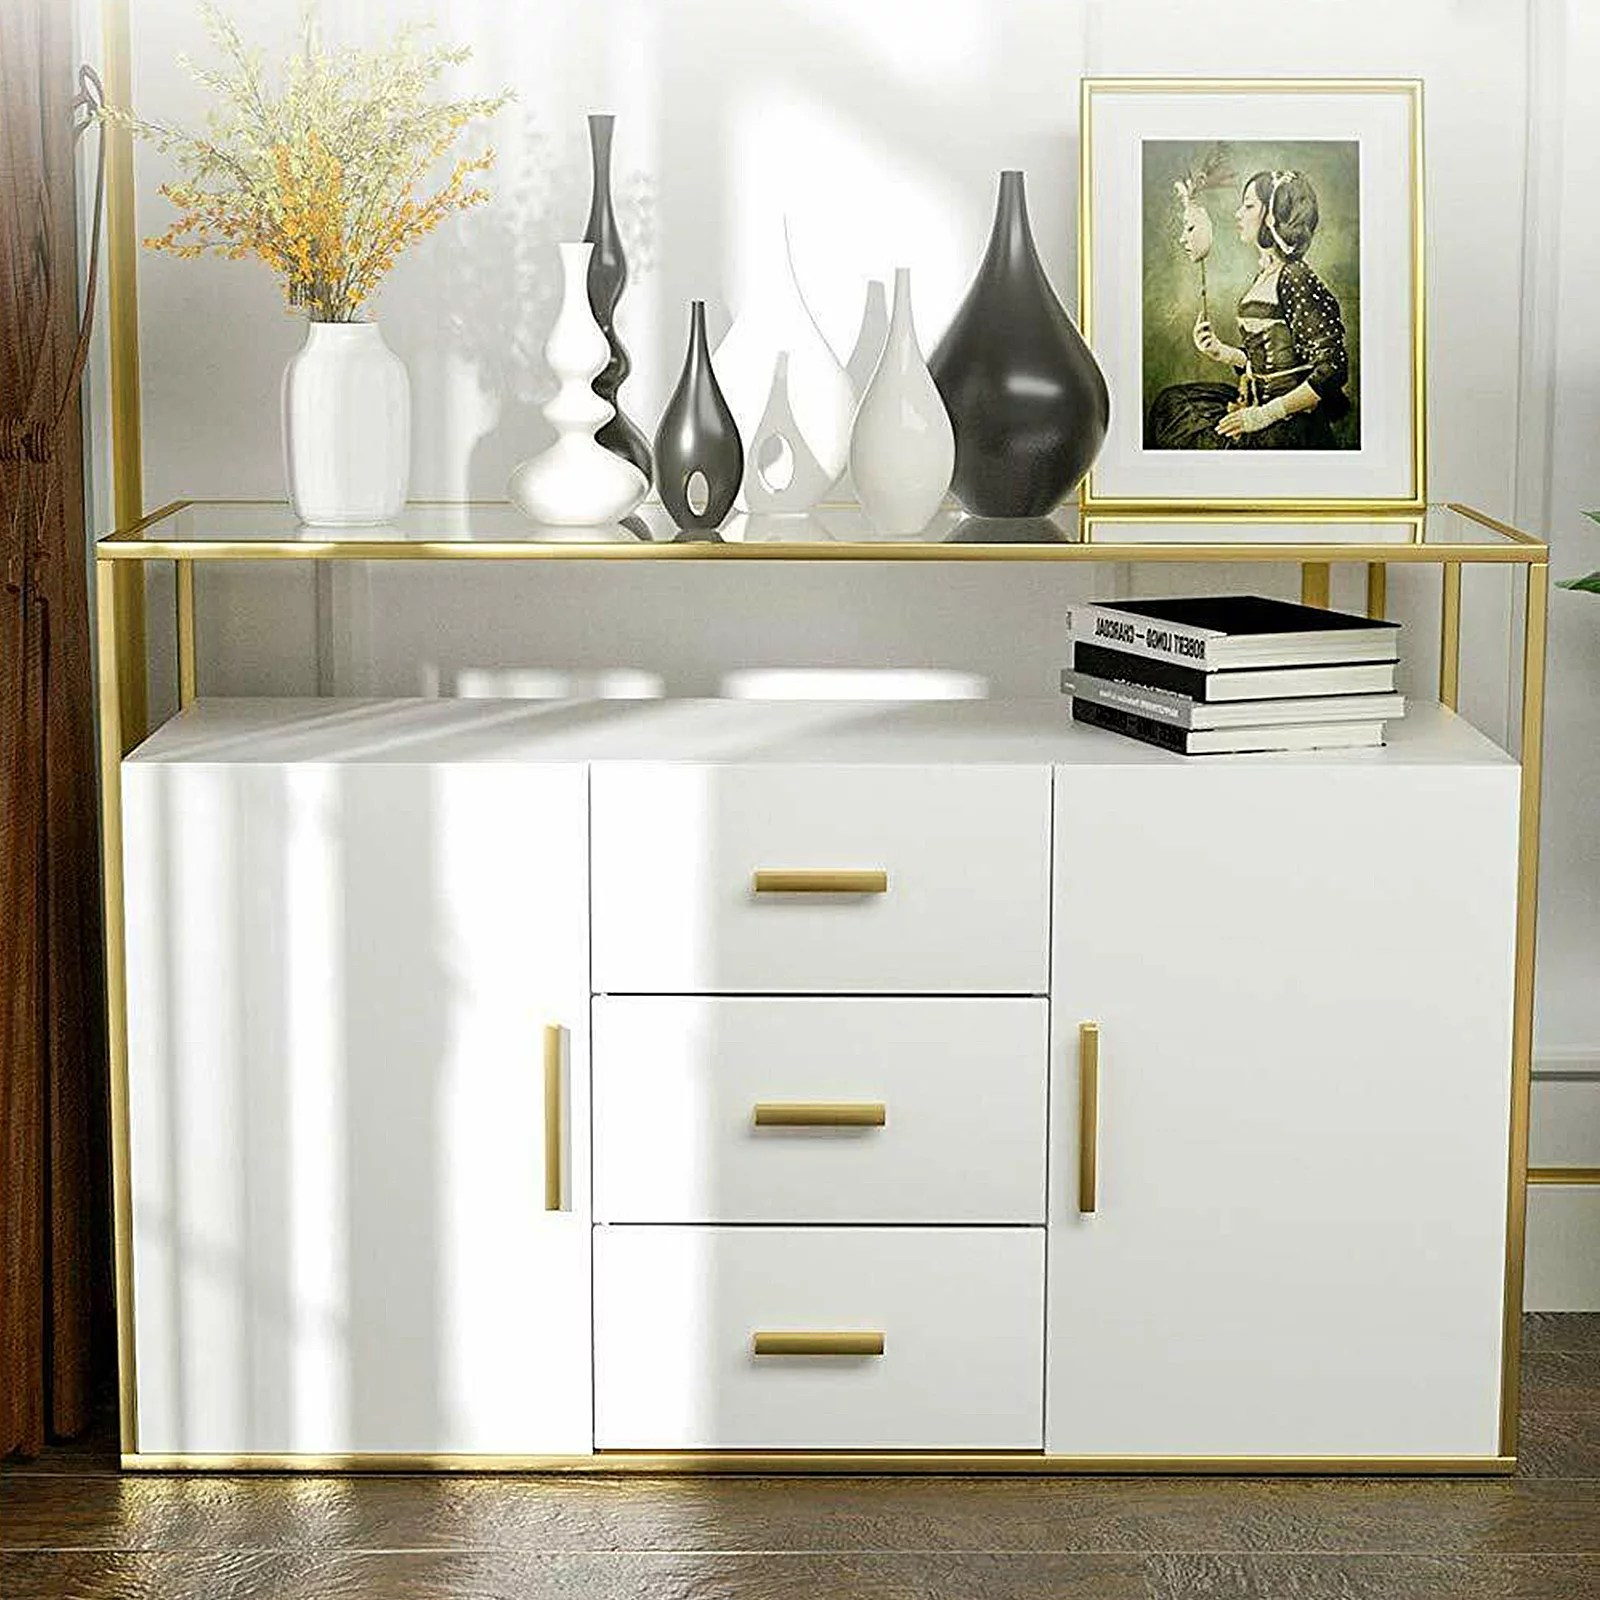 Mecor Kitchen Sideboard Buffet Cabinet Tempered Glass Top Buffet Storage Cabinet With 3 Drawers 2 Doors And Open Shelf Kitchen Dining Room Furniture Console Server Table White Home Kitchen Helioservice Furniture